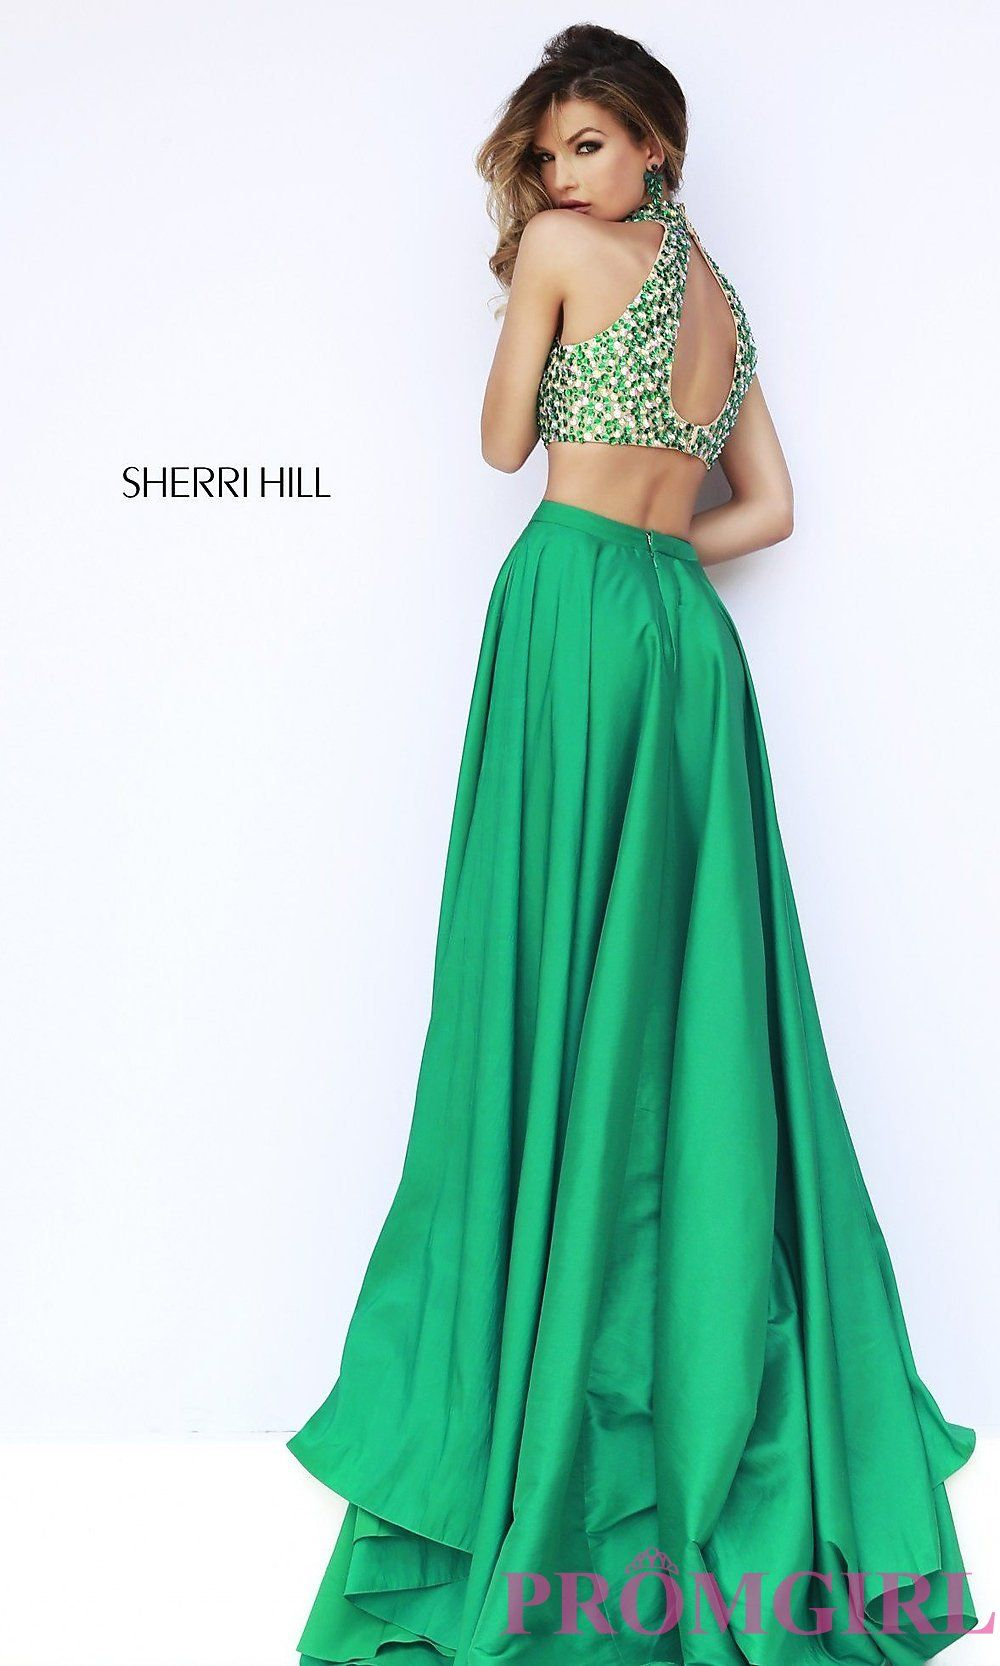 Long Halter Two Piece Dress by Sherri Hill 32020 | Prom dresses ...